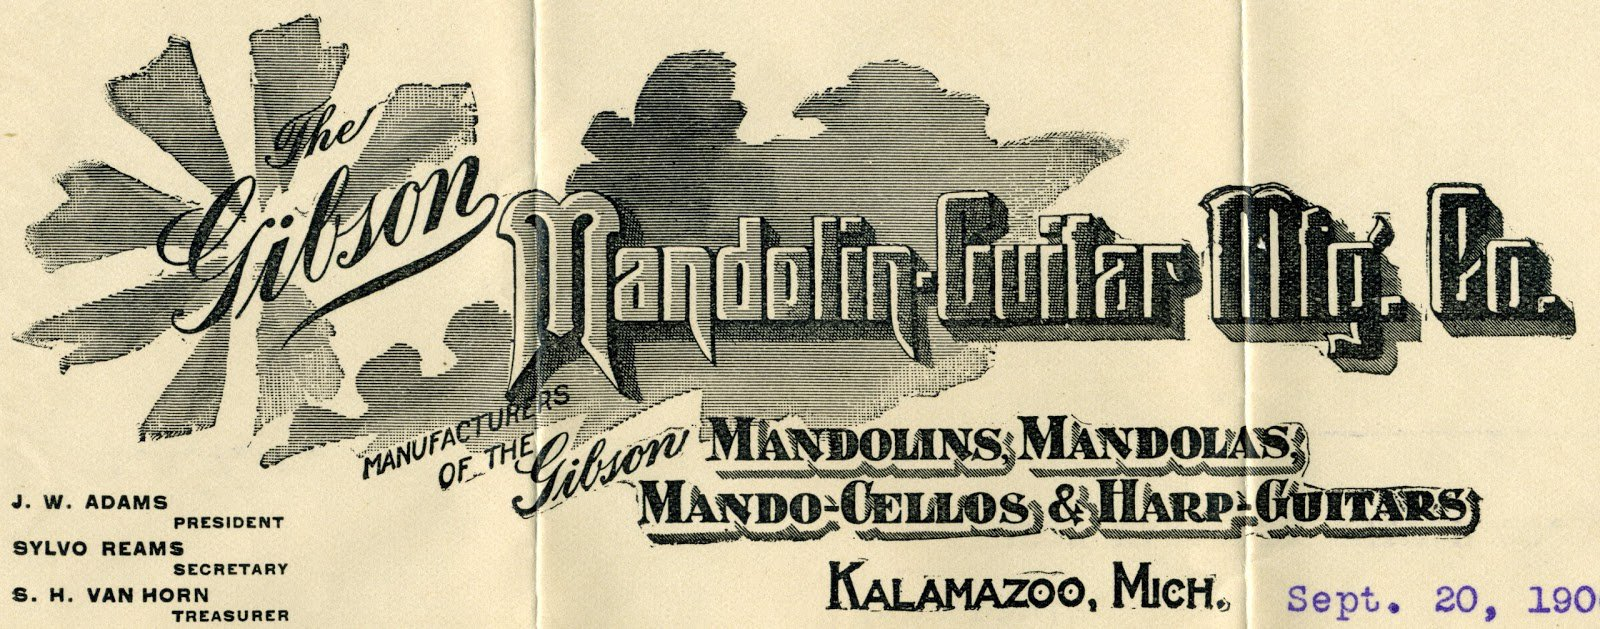 115 years ago today, the Gibson Mandolin guitar company was formed. https://t.co/m16F9aGU5h